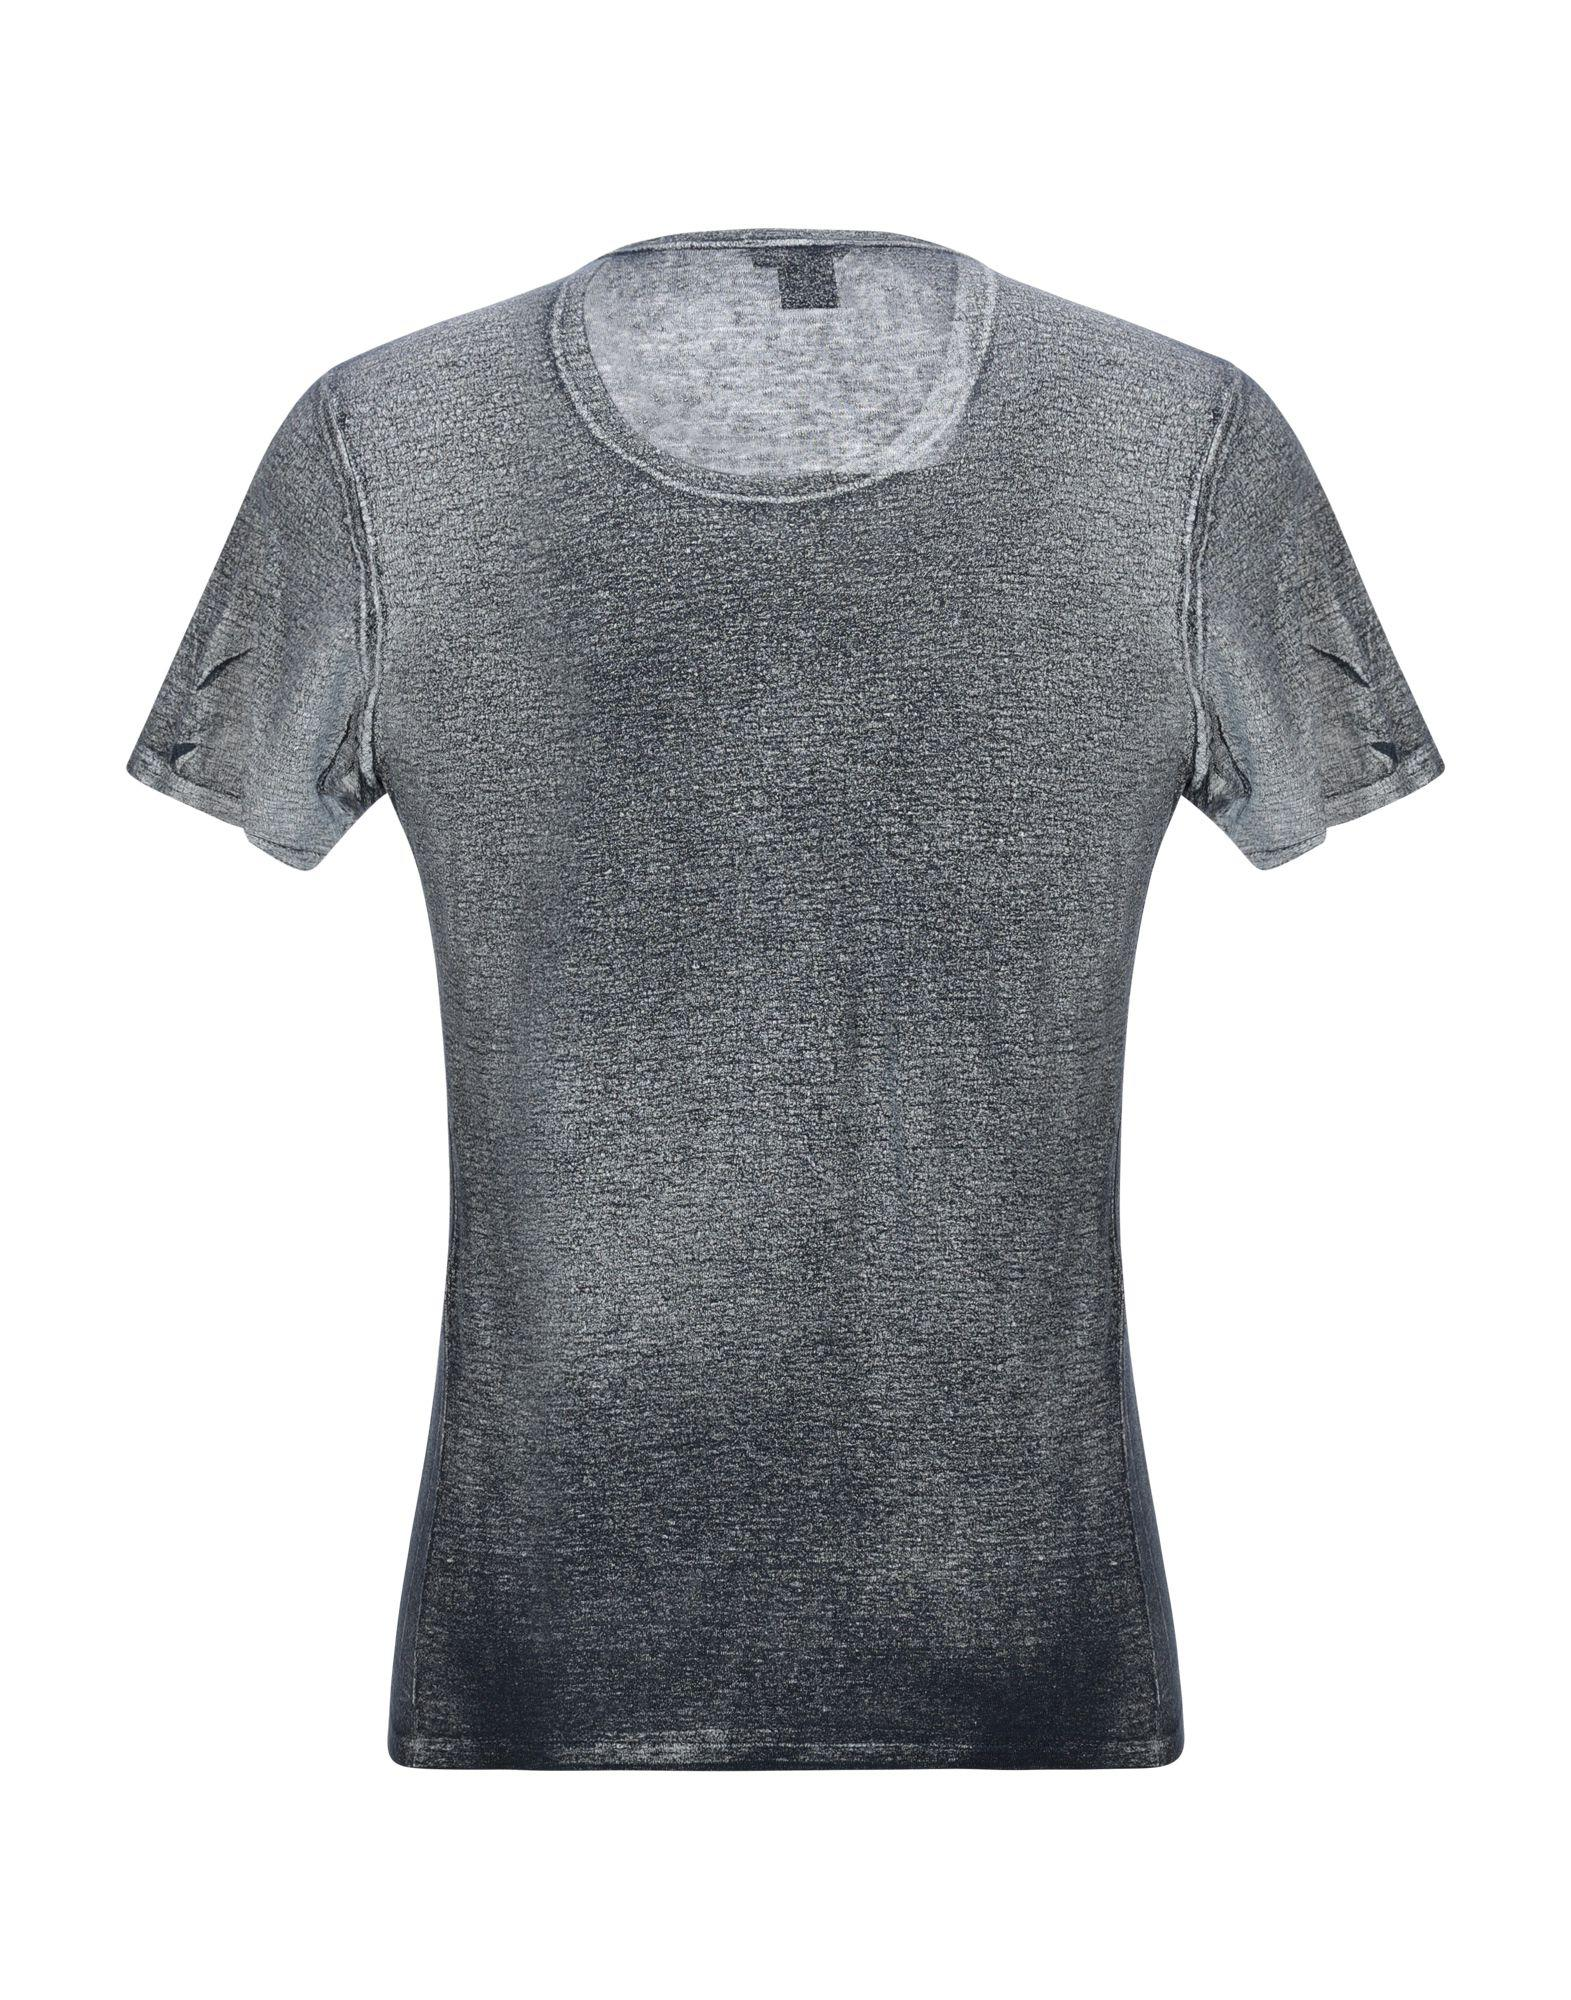 e6b0c028 Lyst - Avant Toi T-shirt in Blue for Men